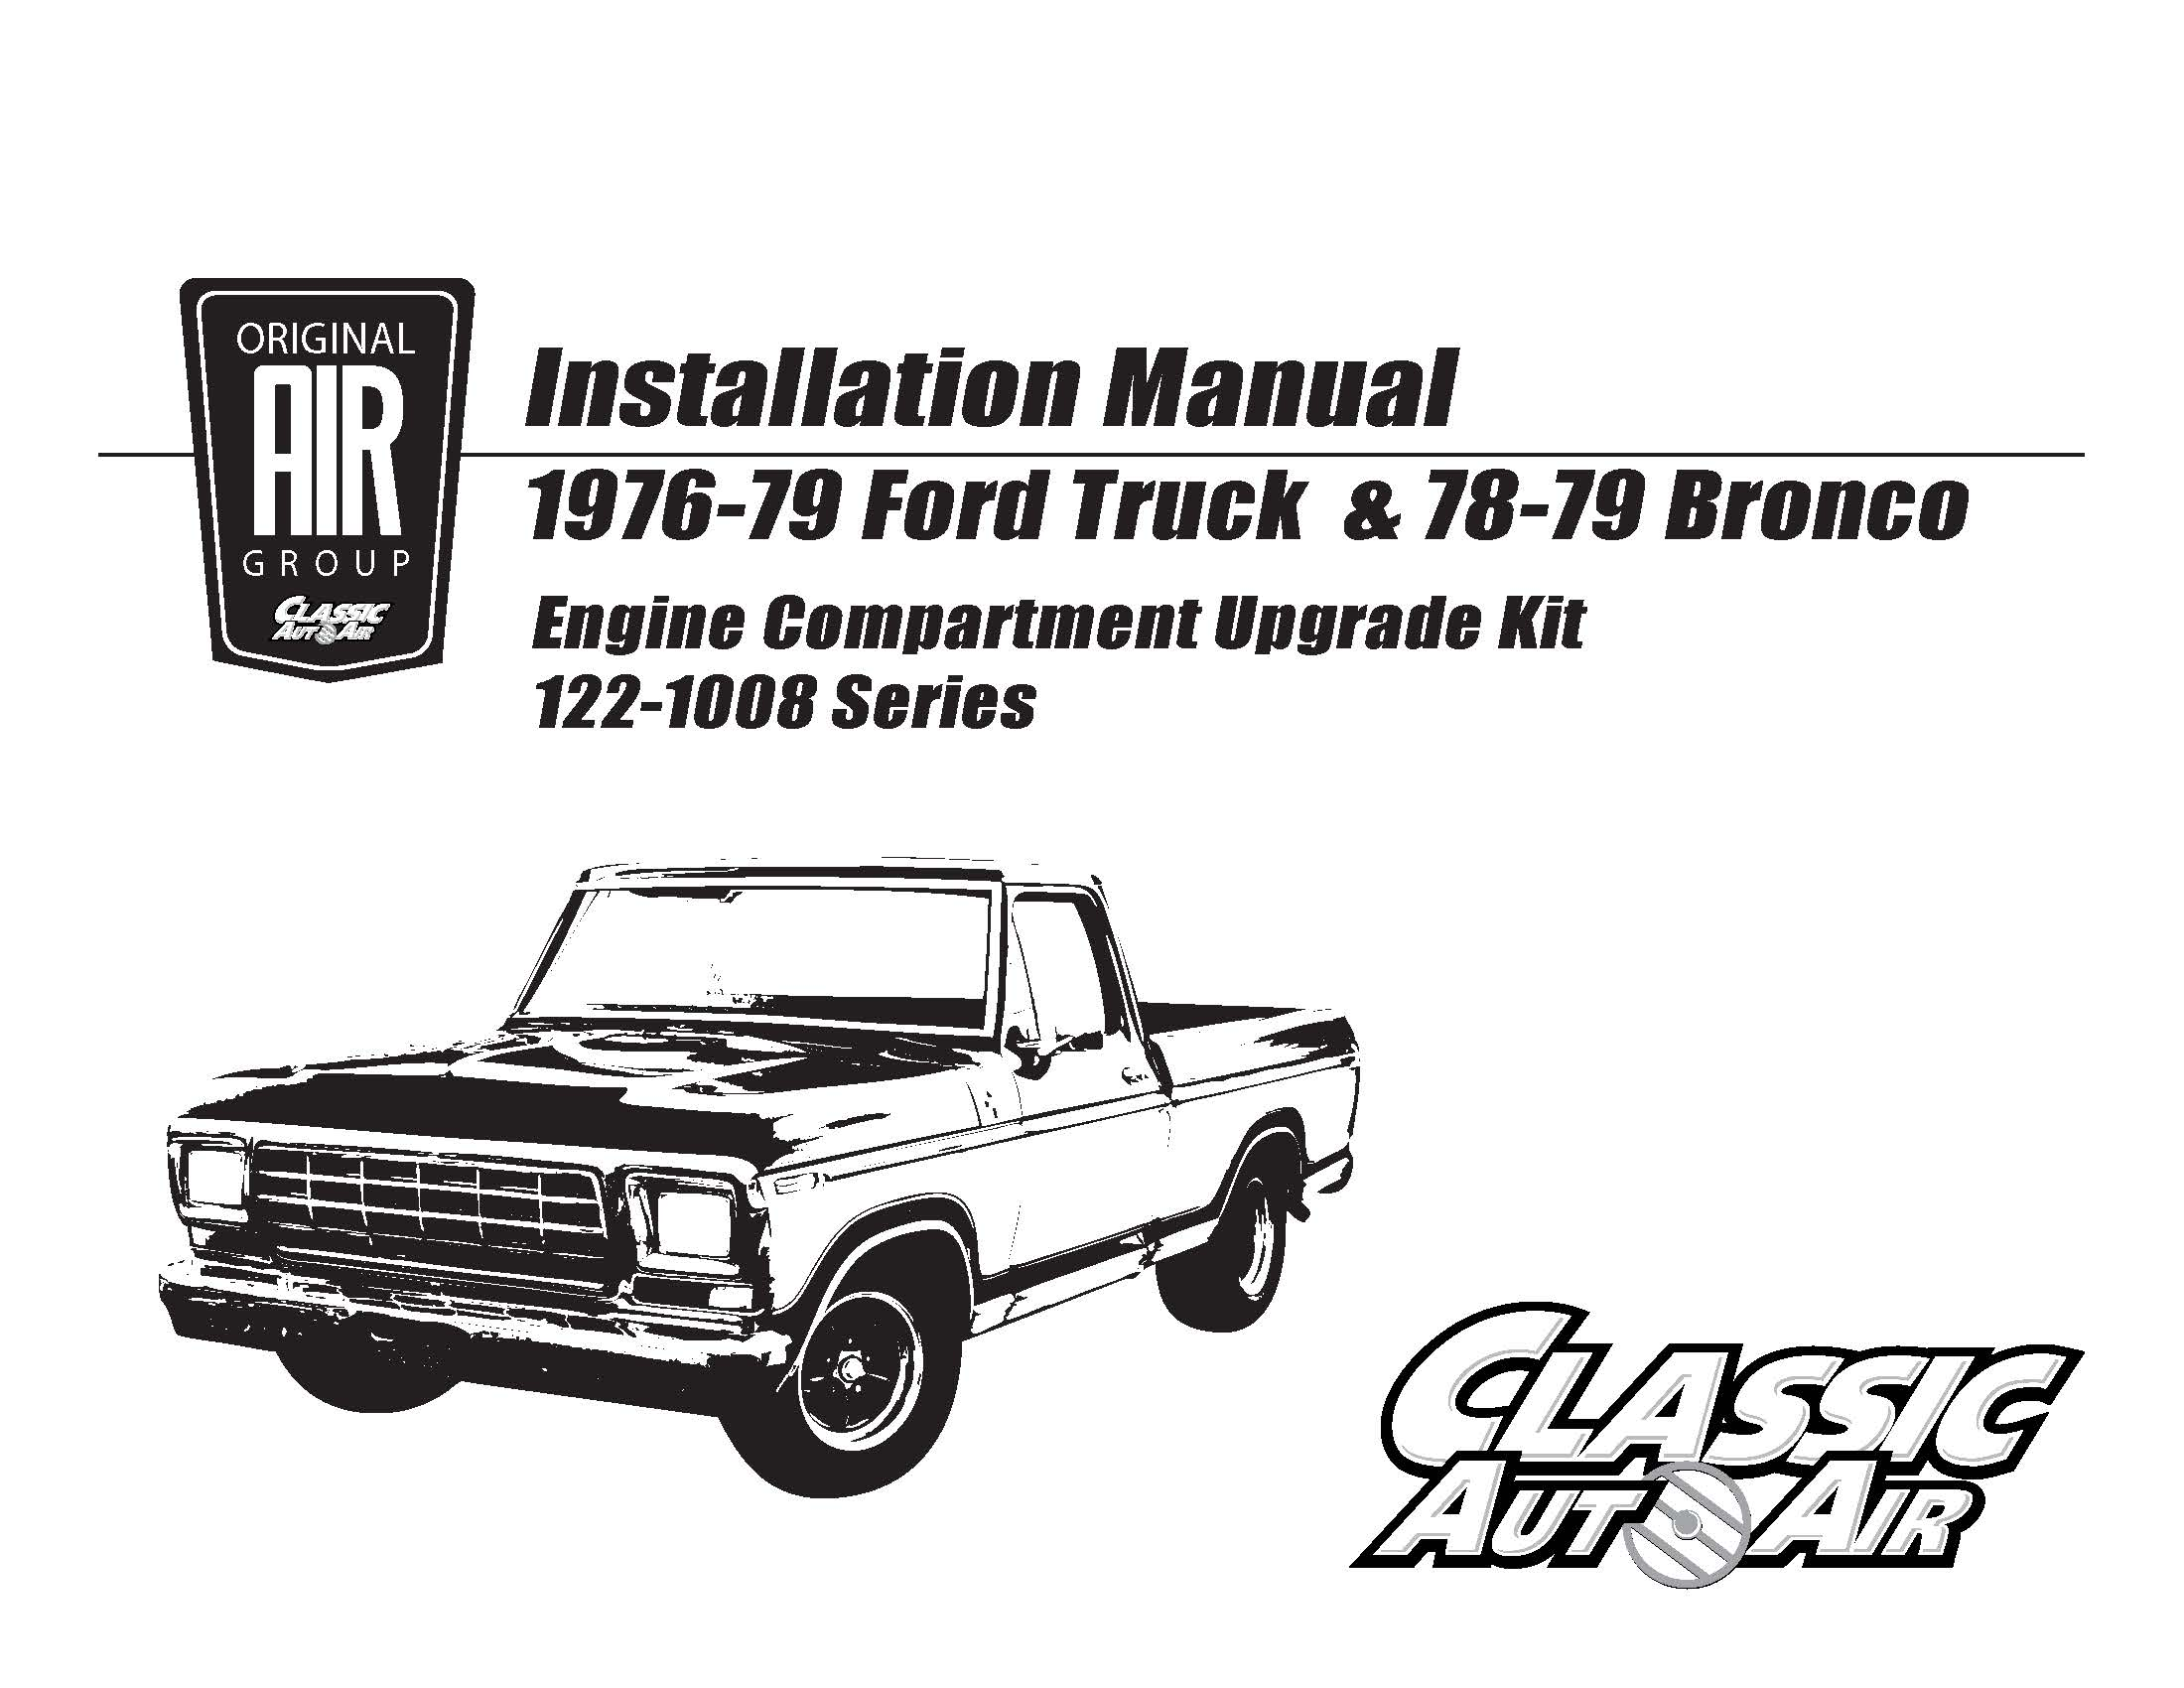 76 79 F Series Truck Bronco A C Upgrade Kit Stage 2 Original Air Group 1980 Ford Box Other Than Crimping One End Of The Hoses And Charging System No Specialized Tools Or Knowledge Is Required For Installation Parts